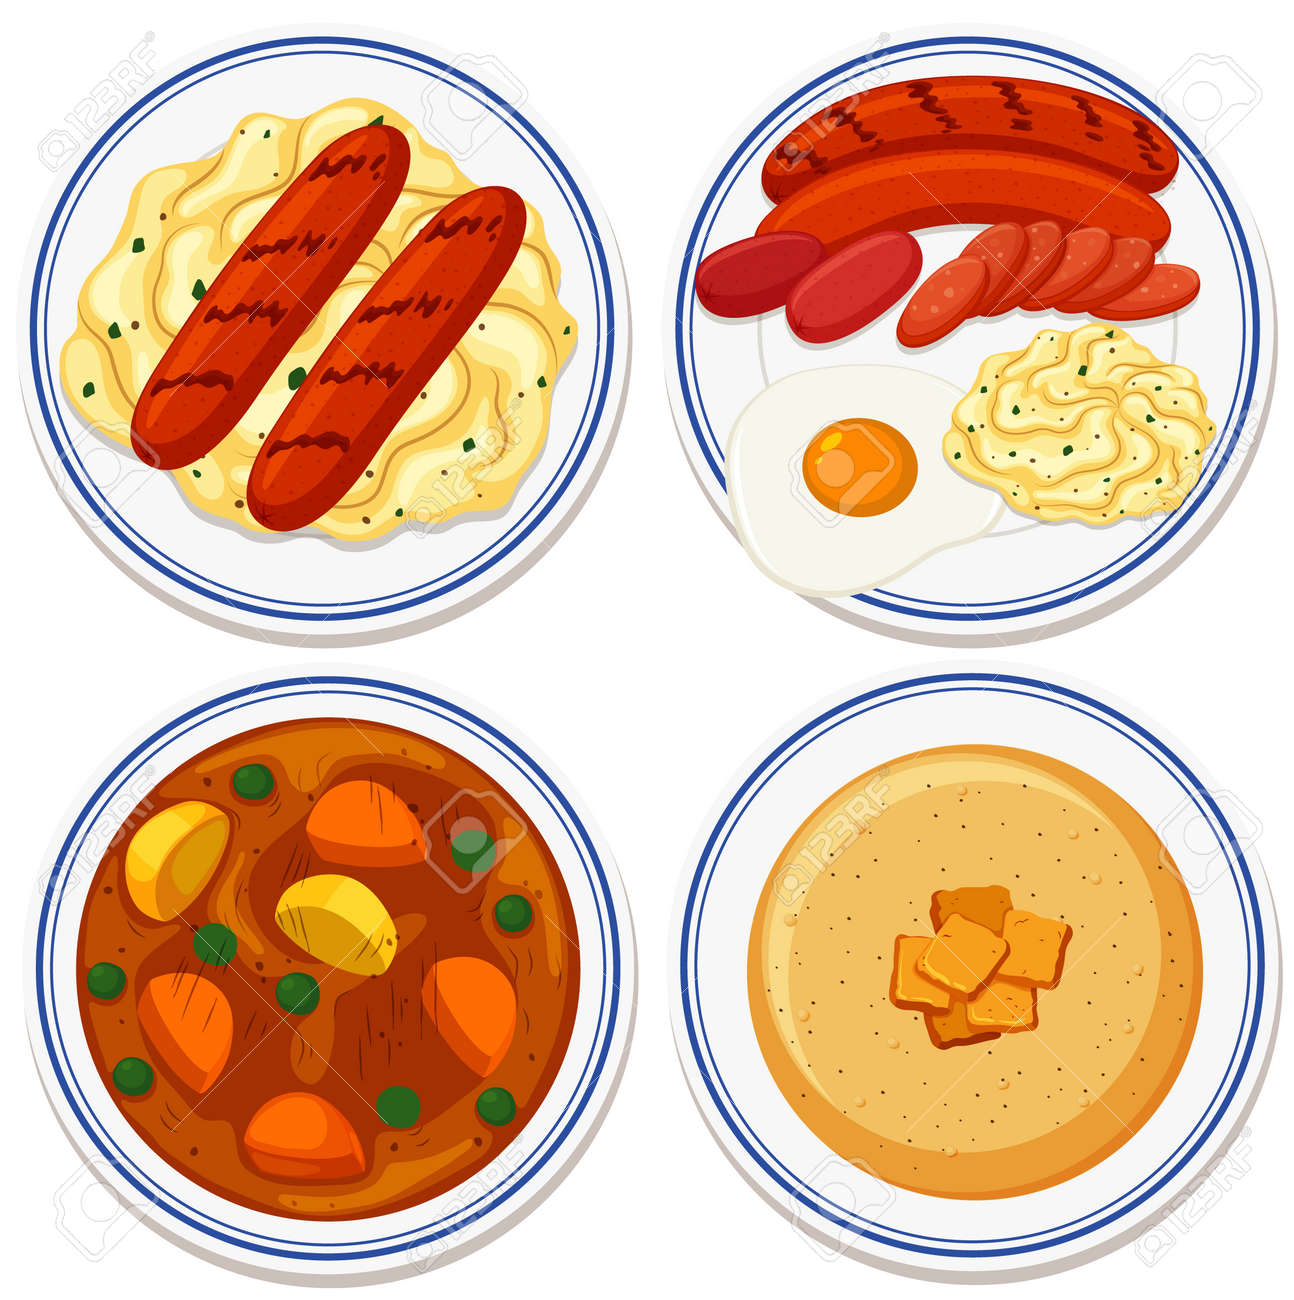 Aerial view of food on plate illustration - 154507476